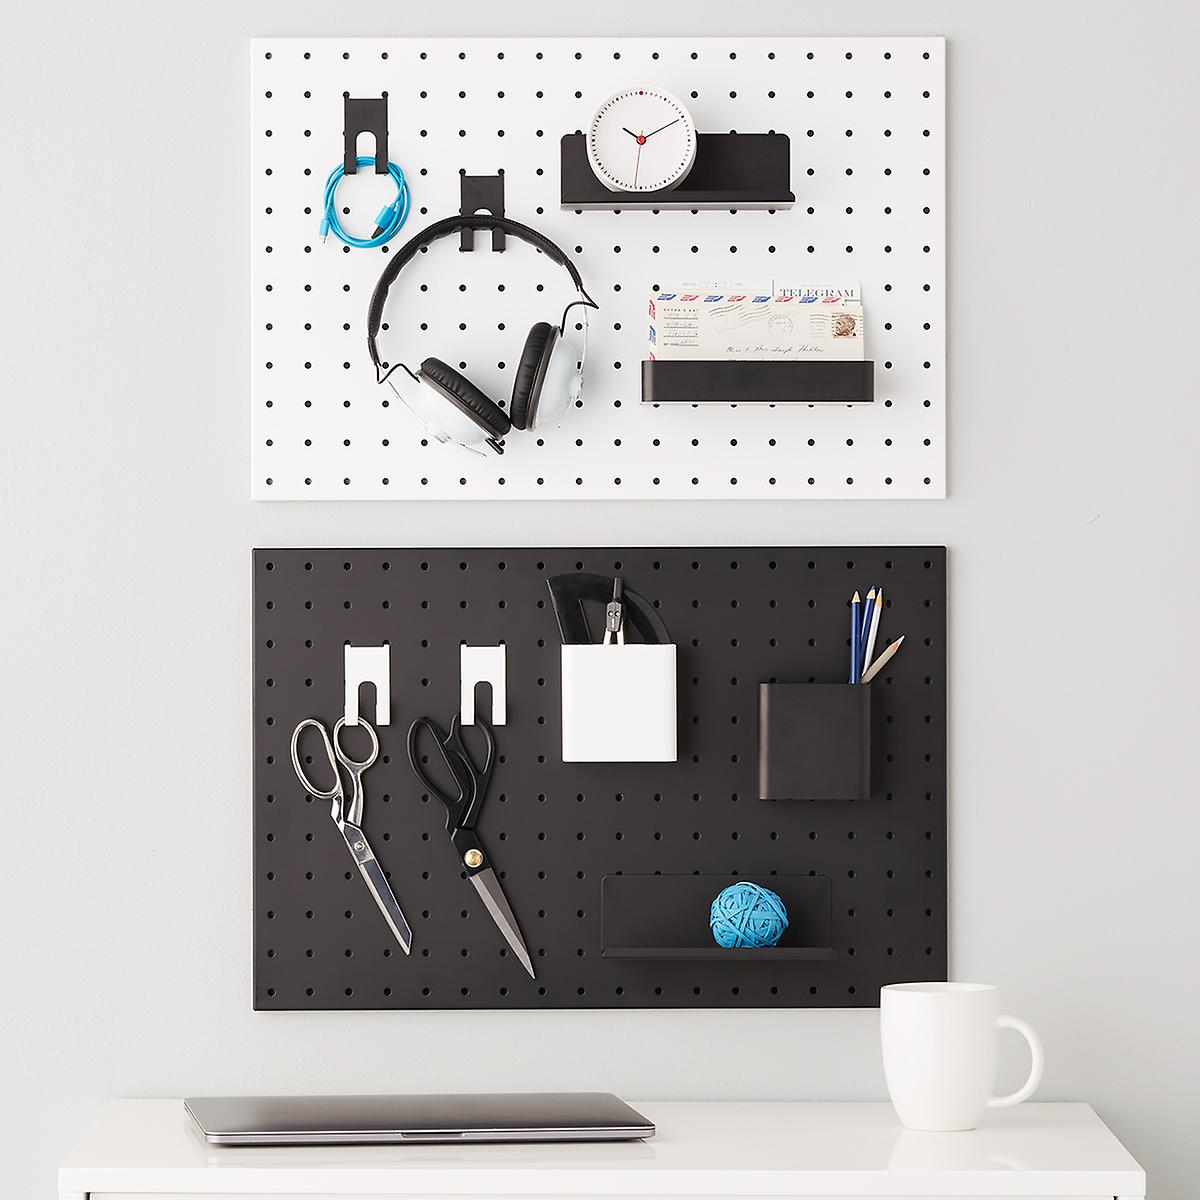 Bello Pegboard System Components